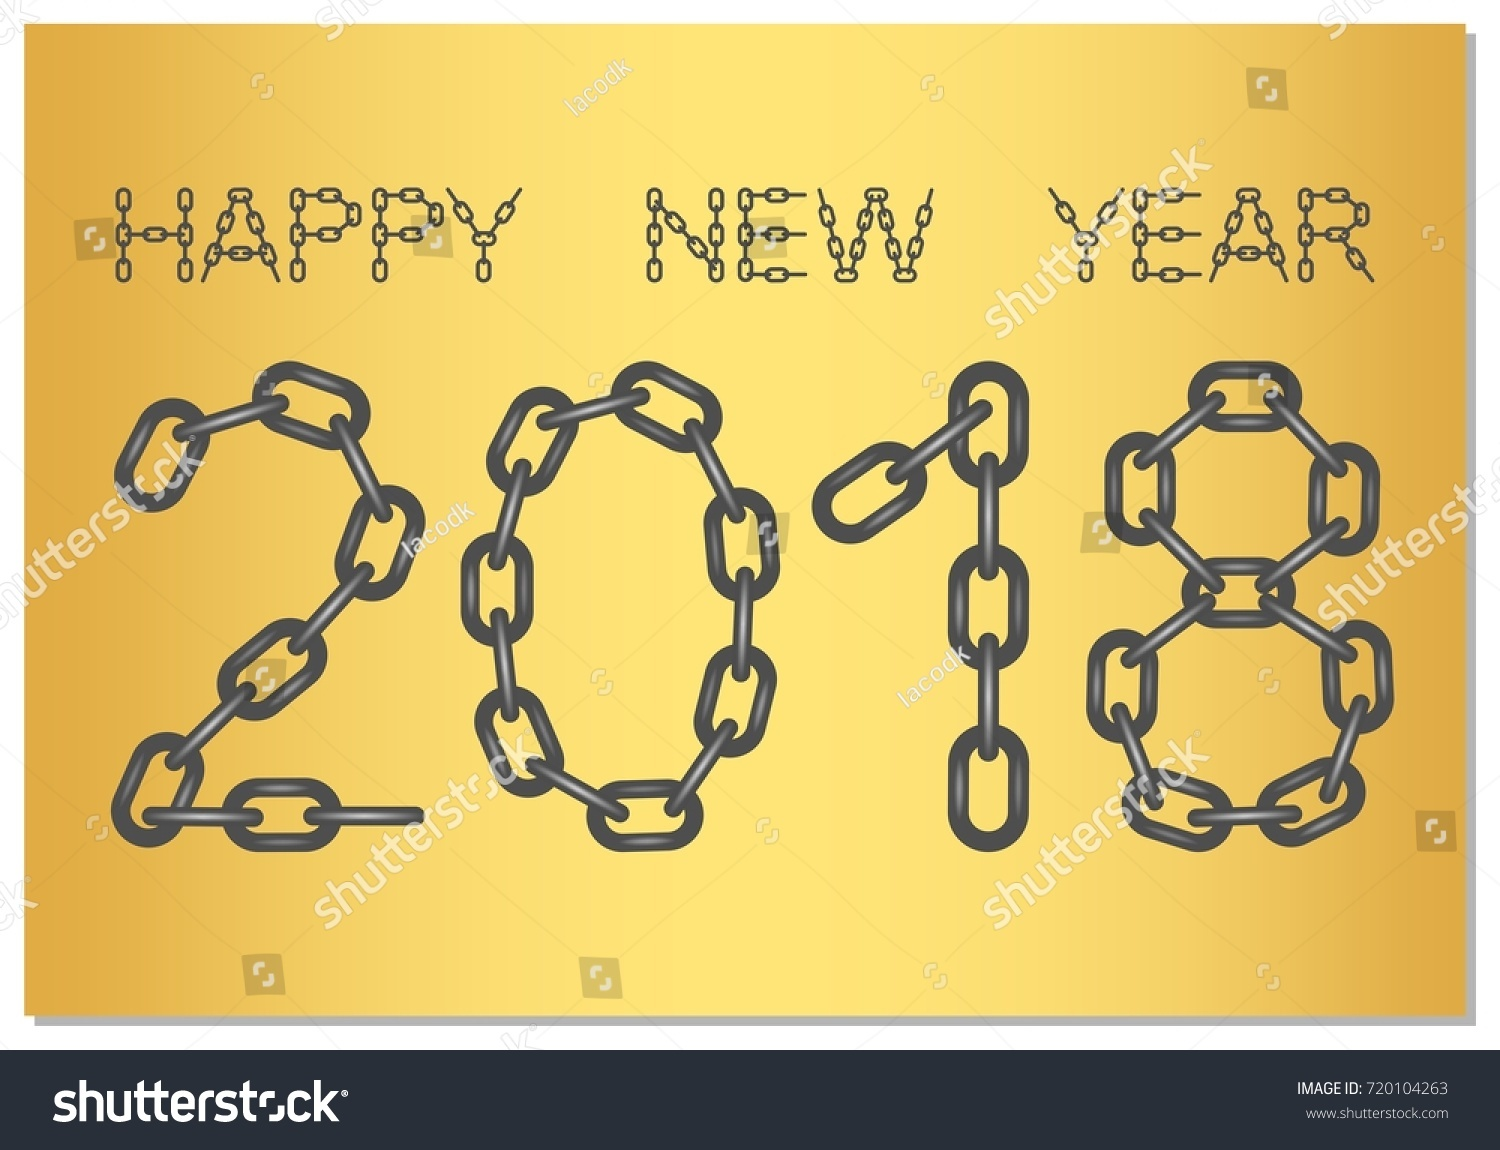 New year greetings 2018 words happy stock vector royalty free new year greetings for 2018 with the words happy new year from steel chain on a m4hsunfo